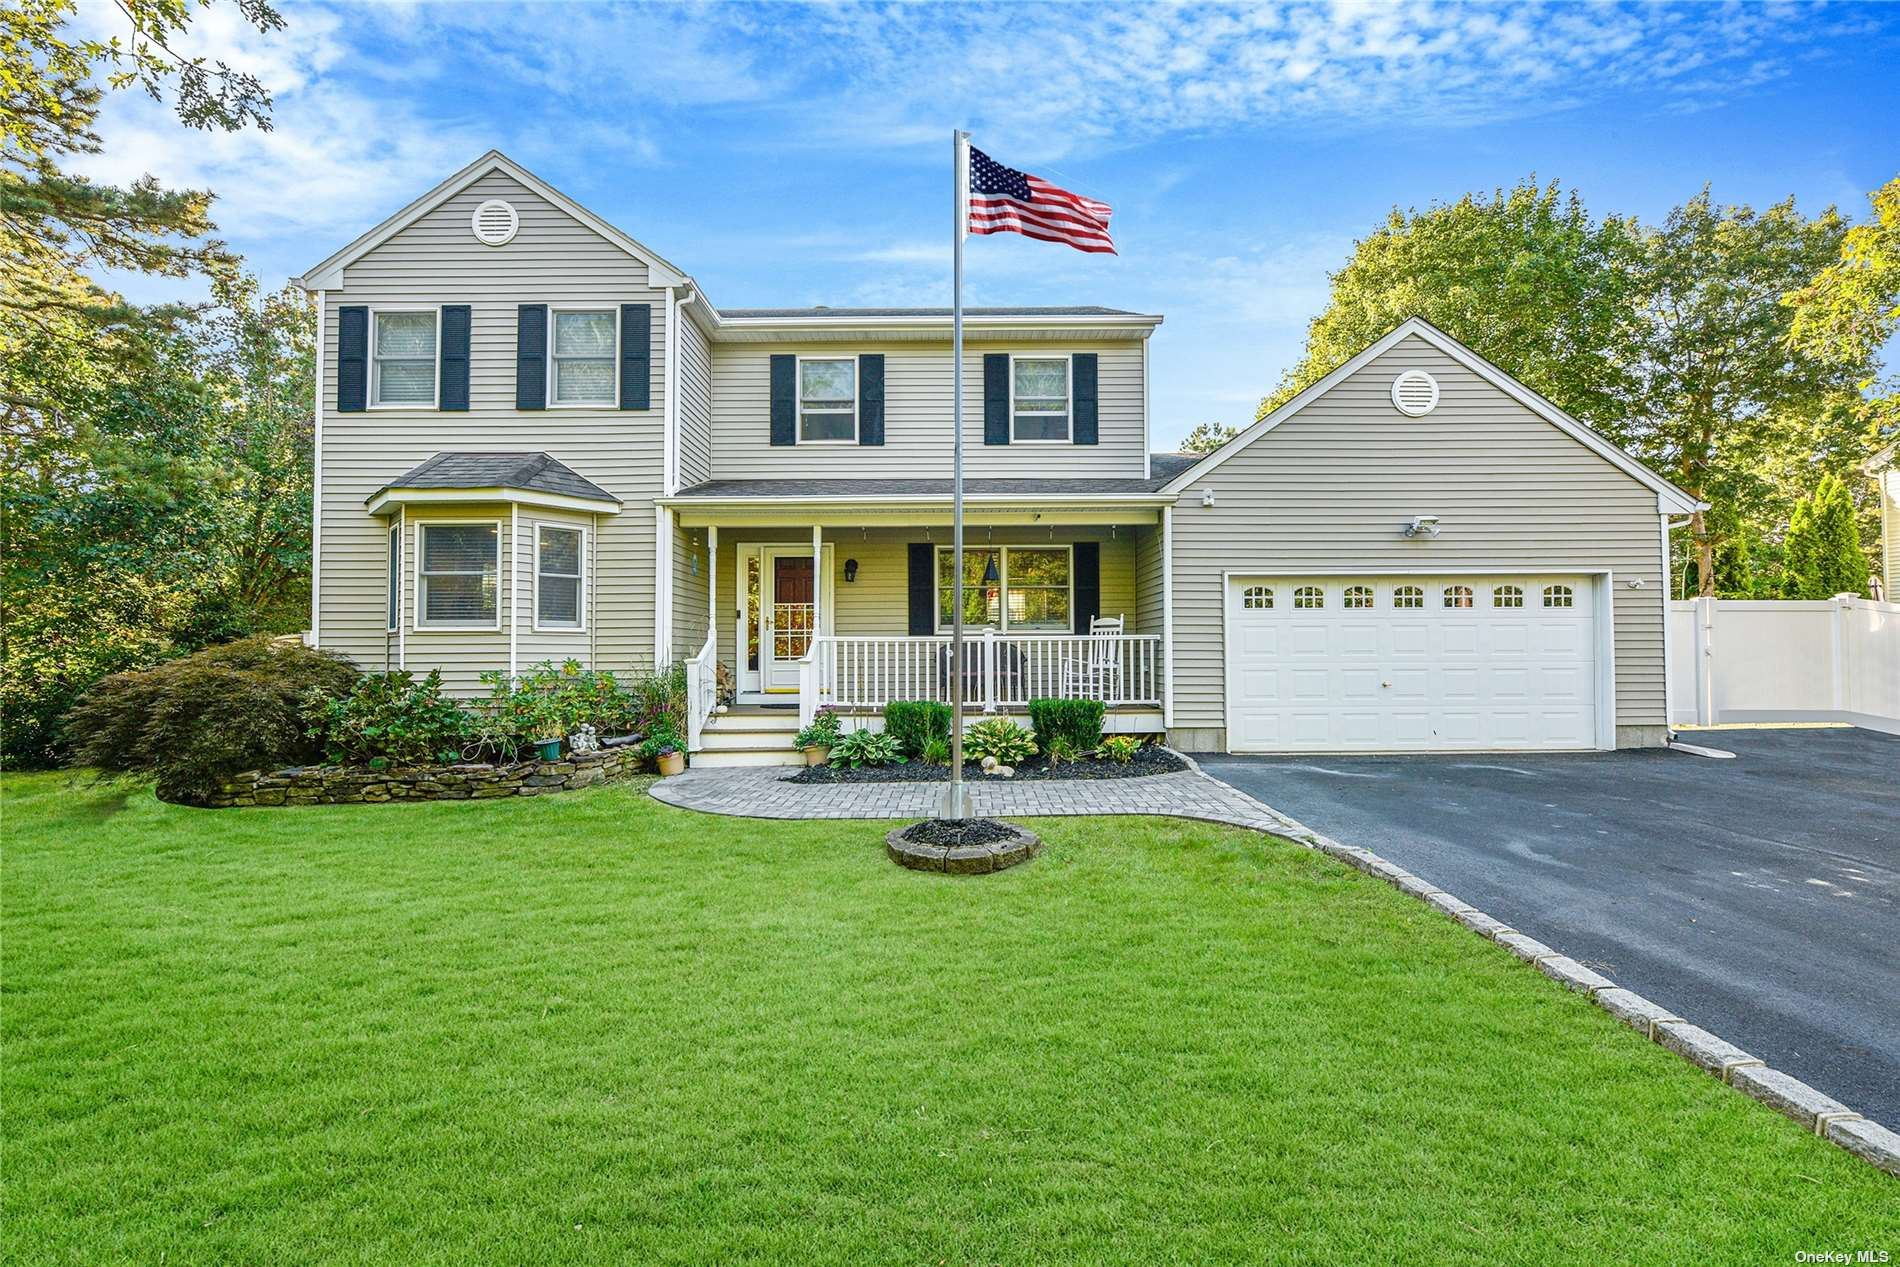 224 Hospital Road, East Patchogue, NY 11772 - #: 3350446